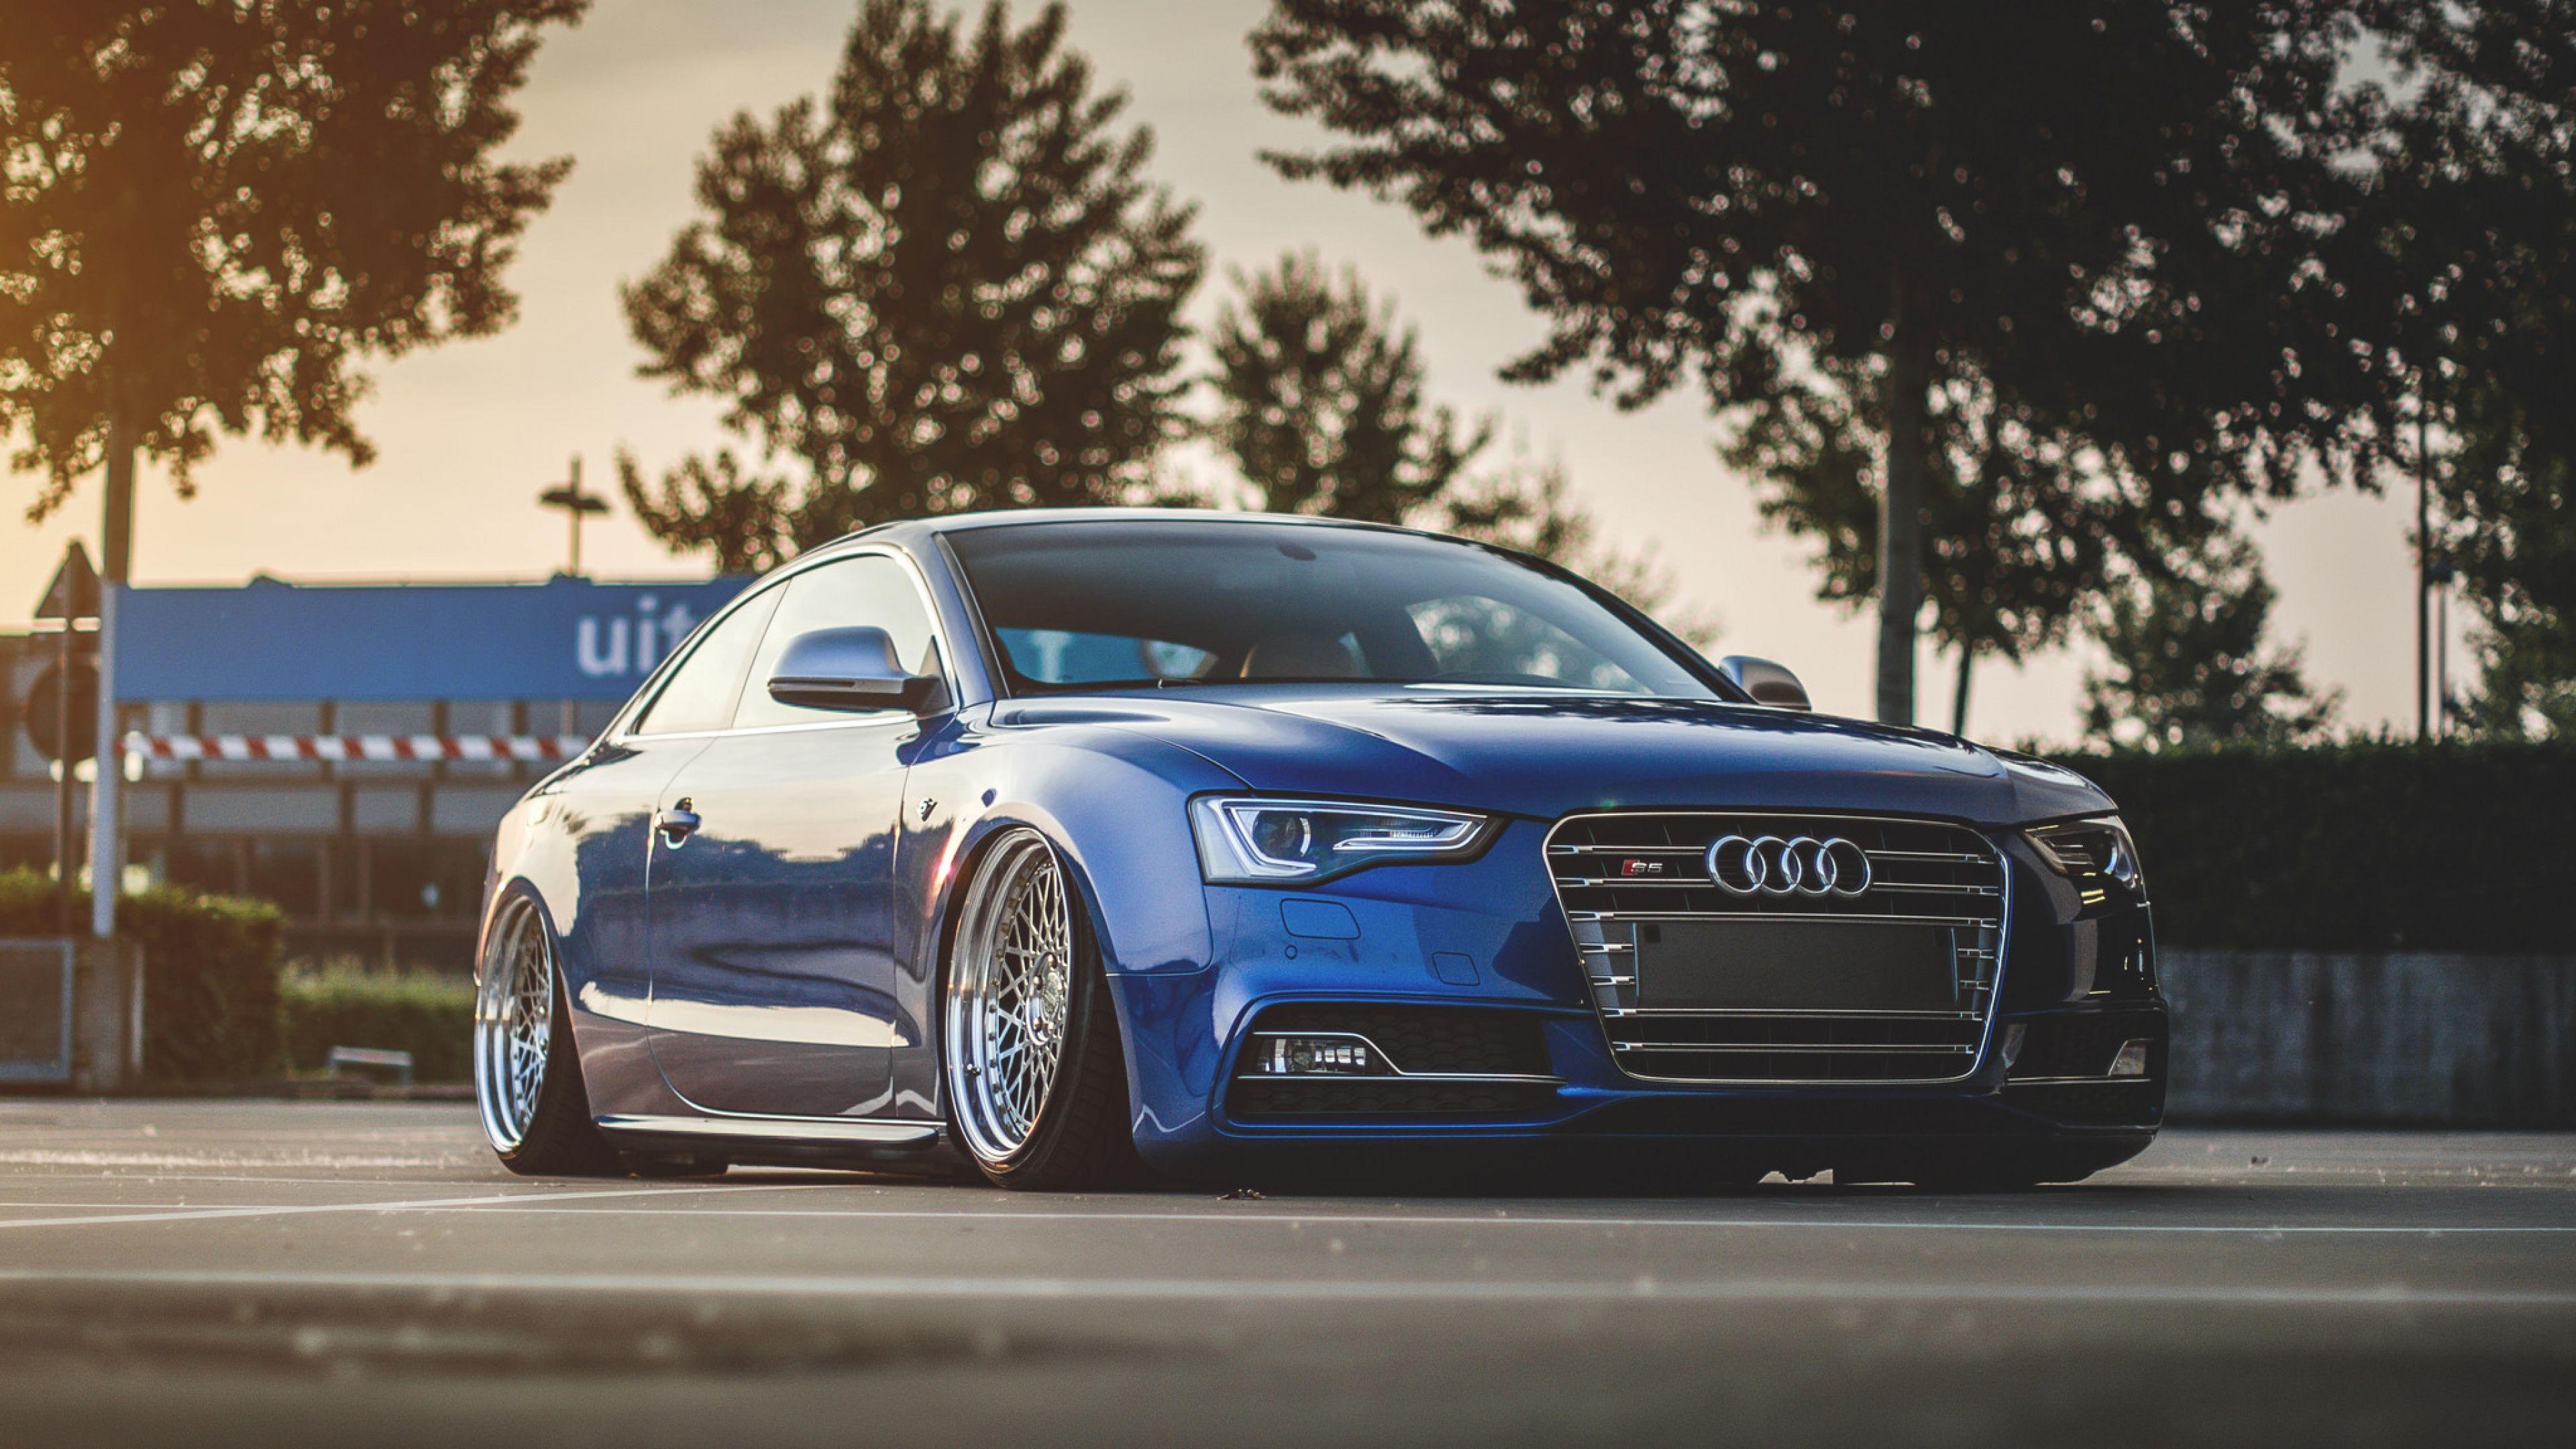 Audi S5 Tuning Wheels, HD Cars, 4k Wallpapers, Image, Backgrounds